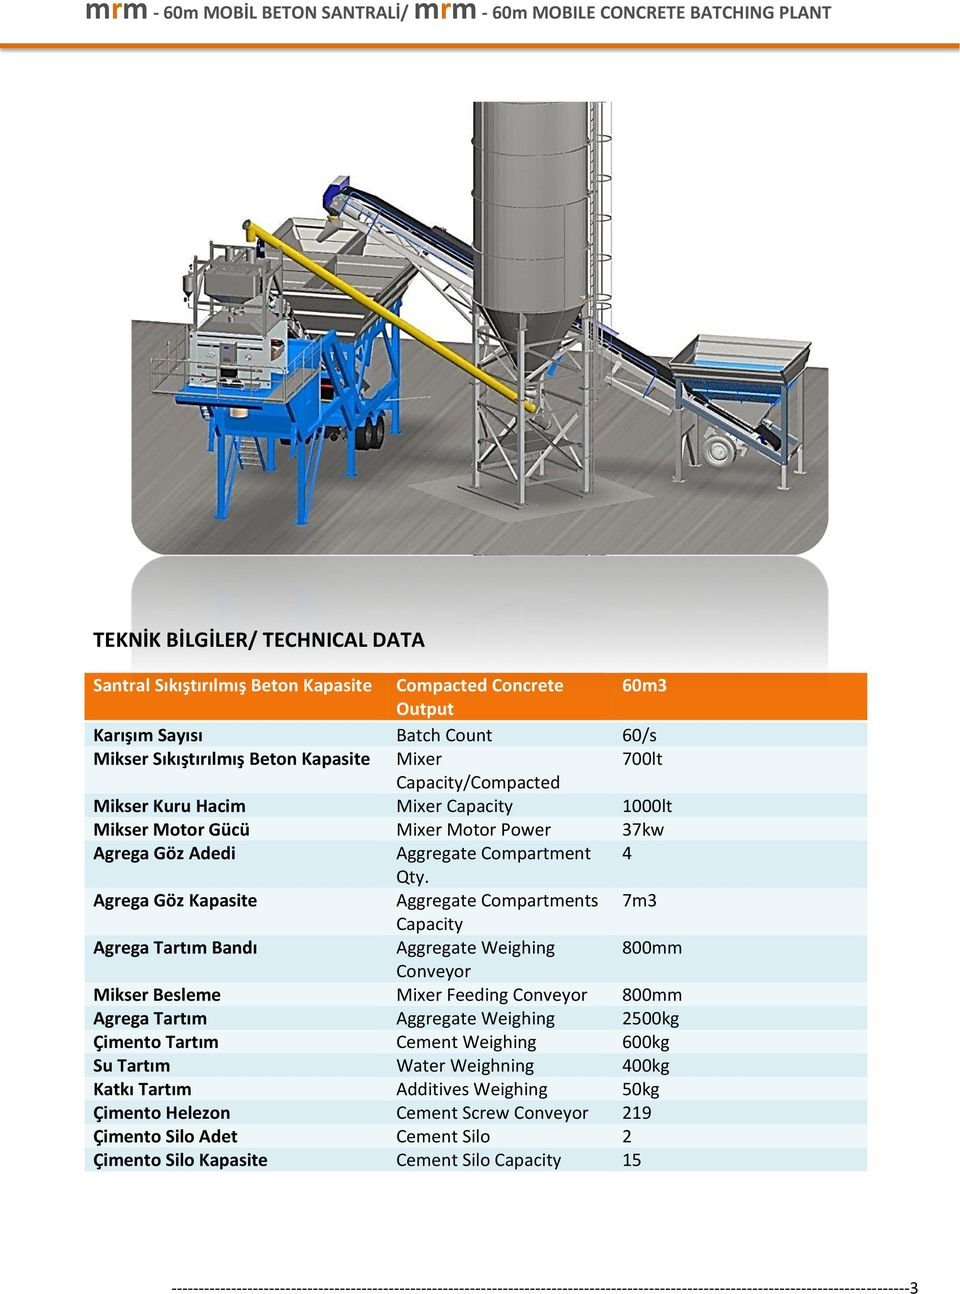 Agrega Göz Kapasite Aggregate Compartments 7m3 Capacity Agrega Tartım Bandı Aggregate Weighing 800mm Conveyor Mikser Besleme Mixer Feeding Conveyor 800mm Agrega Tartım Aggregate Weighing 2500kg